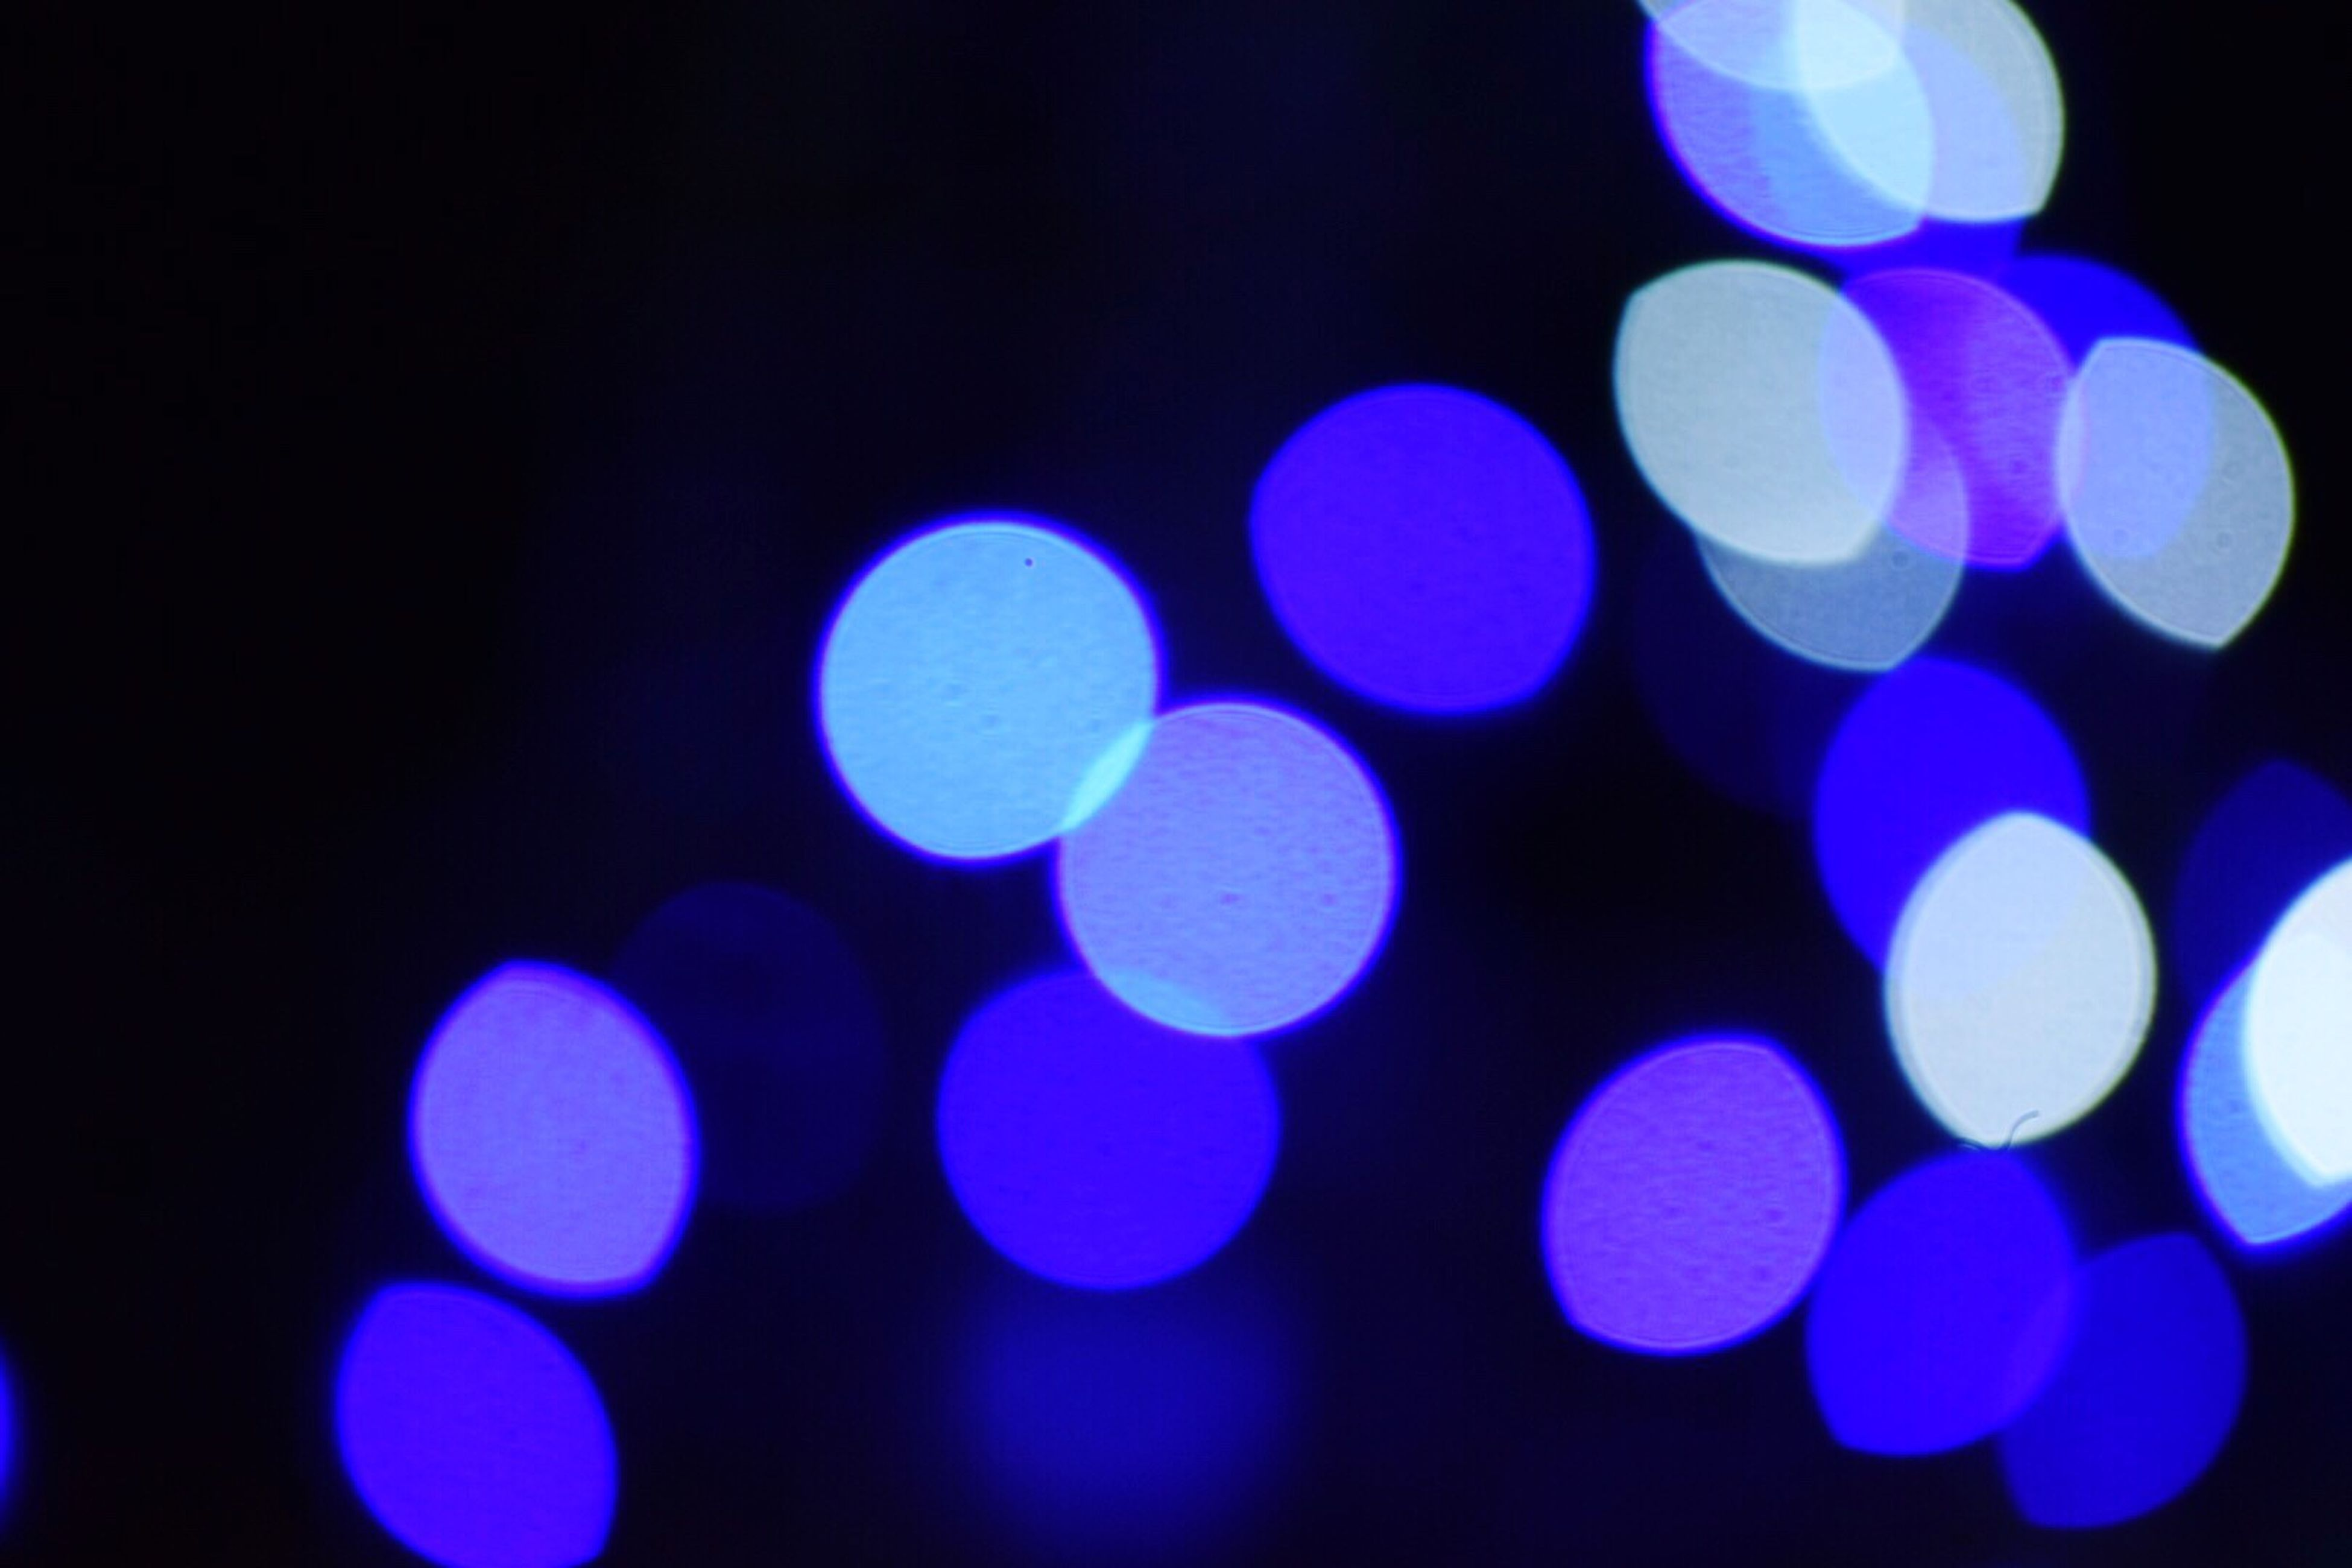 illuminated, night, glowing, abstract, lighting equipment, circle, multi colored, defocused, light - natural phenomenon, pattern, light effect, light, backgrounds, blue, full frame, electric light, low angle view, no people, studio shot, electricity